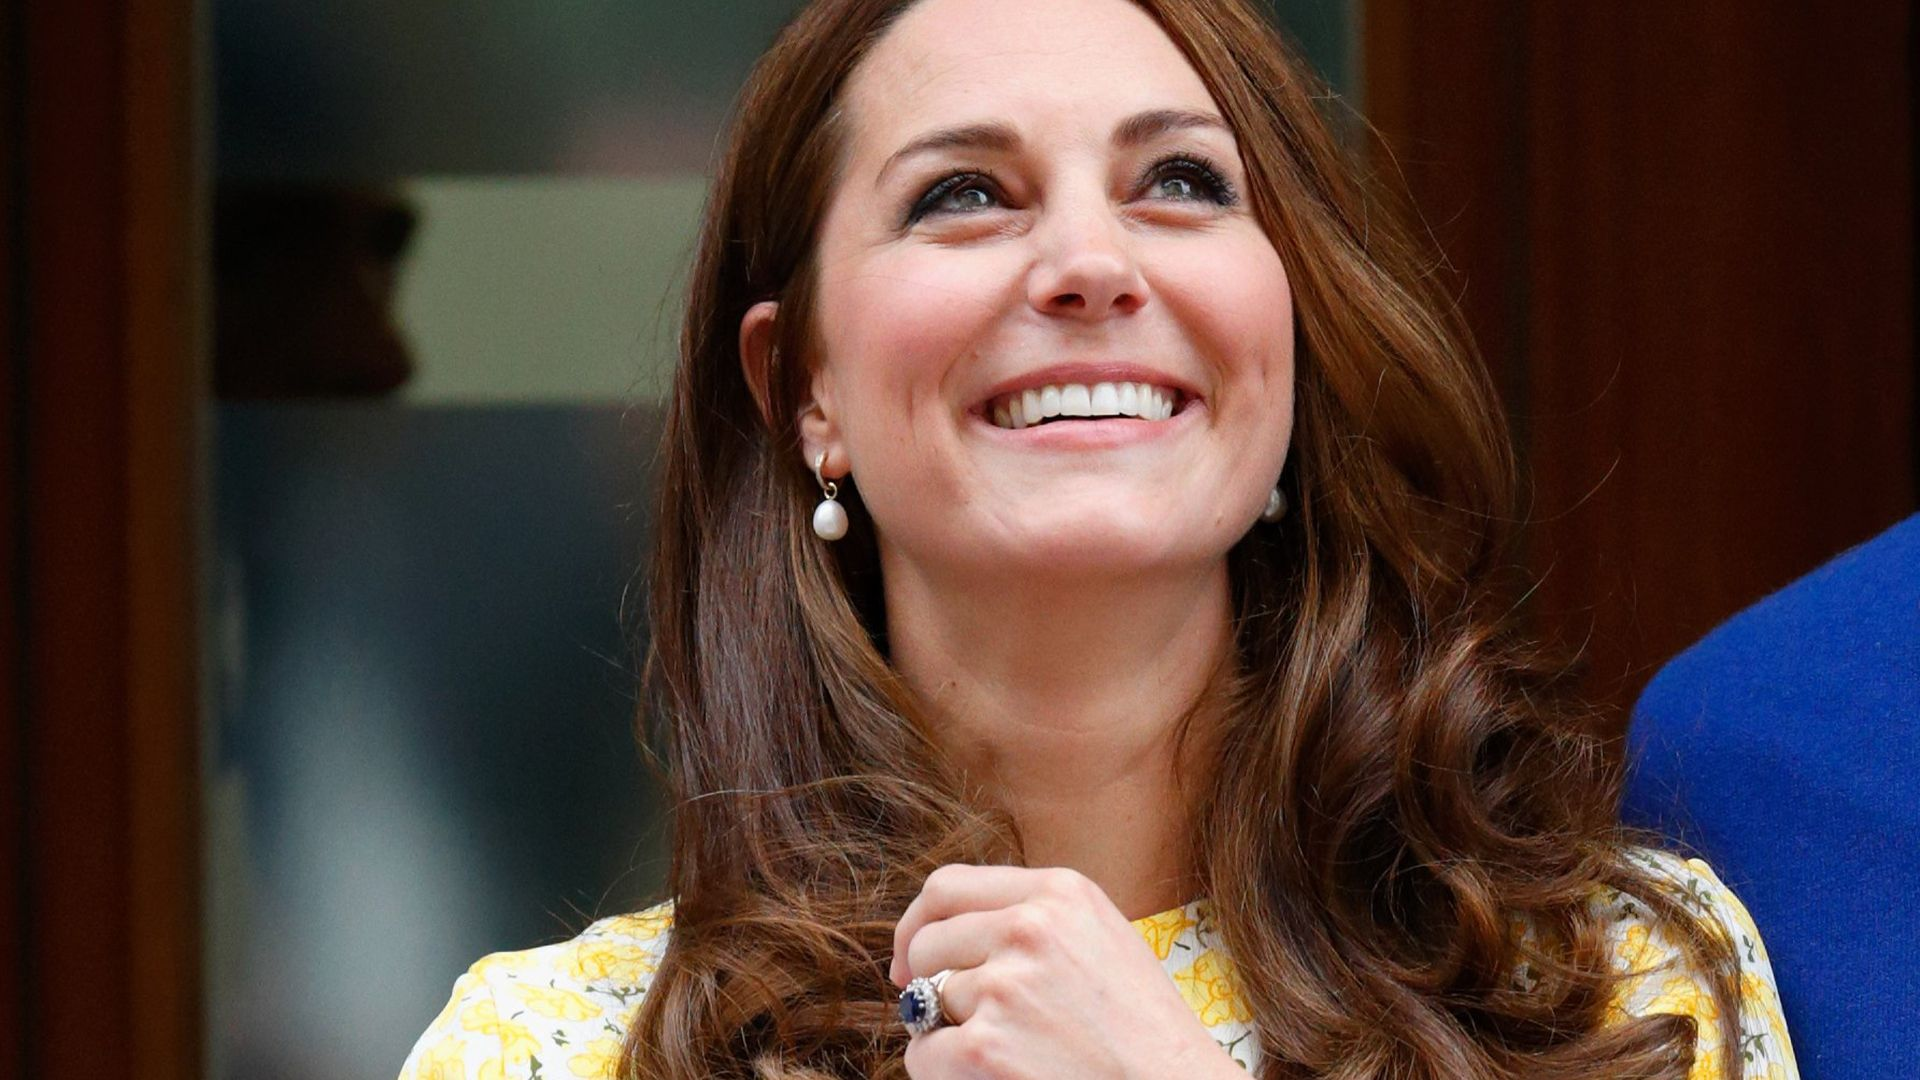 Royal Beauty How You Can Buy Duchess Kate S Conditioner It S Only 12 Skin Care Fragrance Free Skin Care Royal Beauty